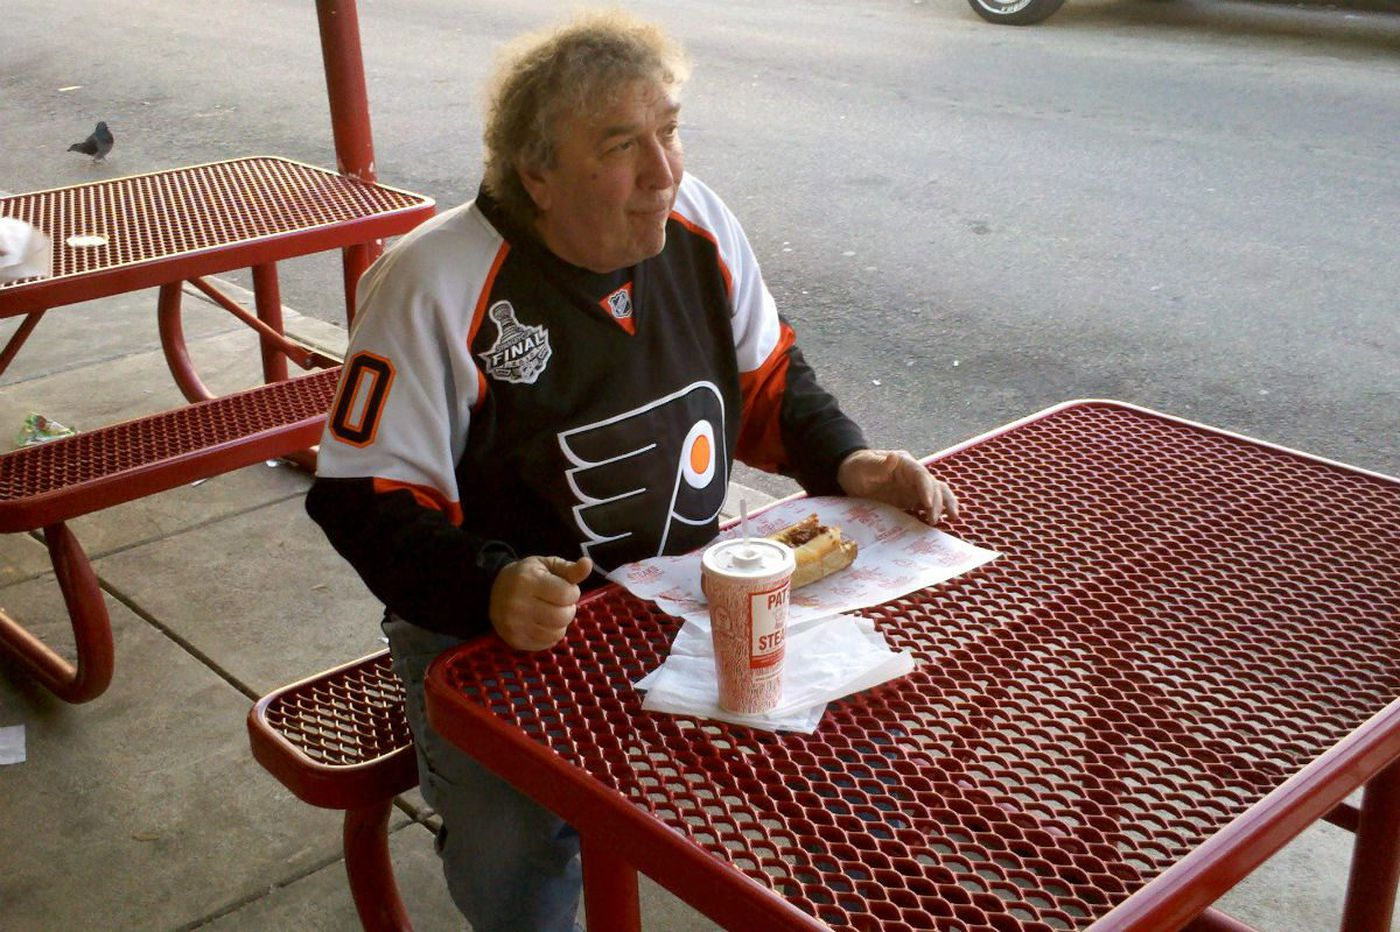 Grandpa's final wish granted: Bury me wit Pat's cheesesteaks